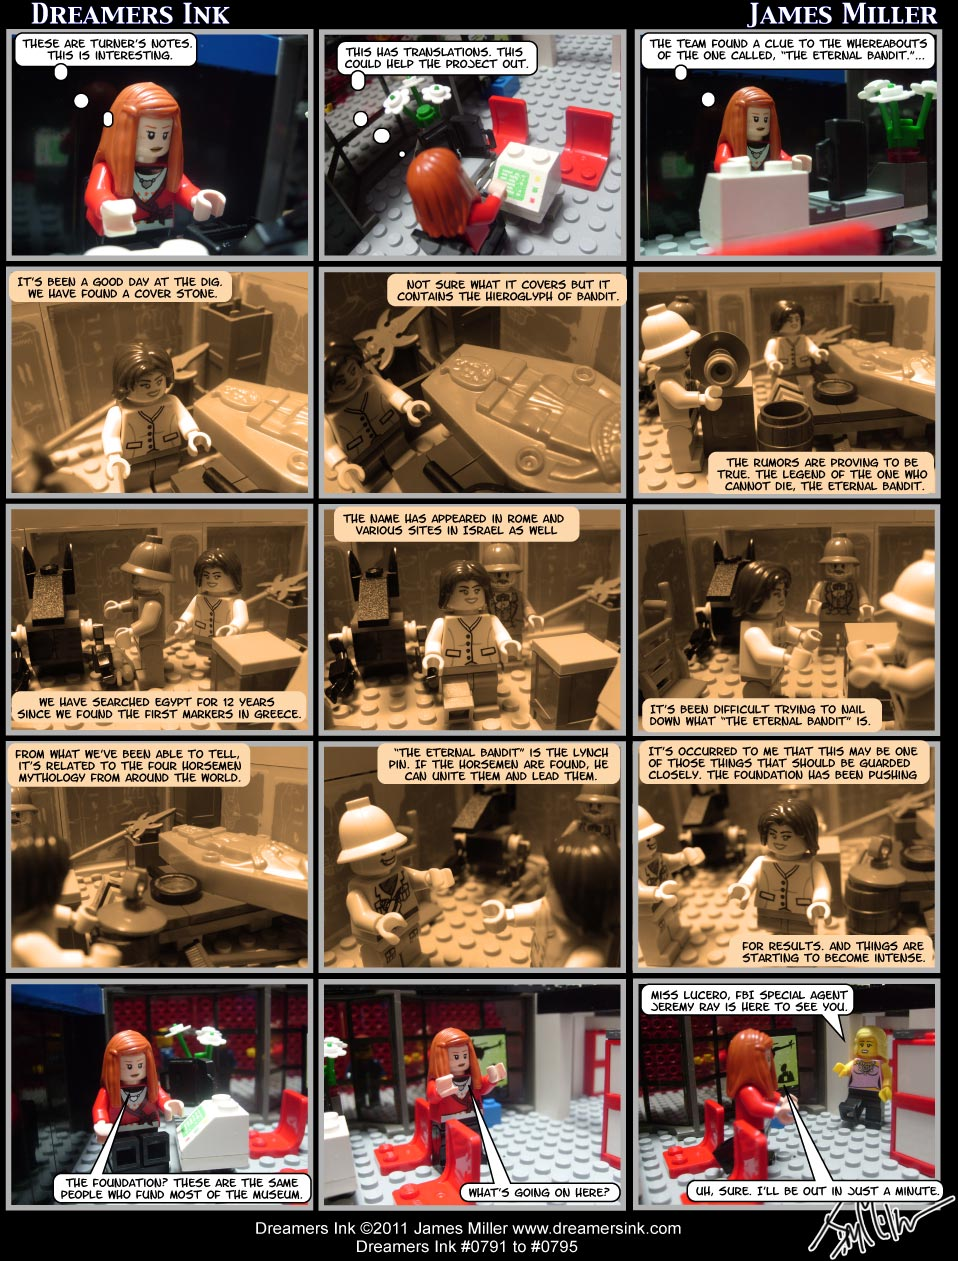 Strips #0791 To #0795